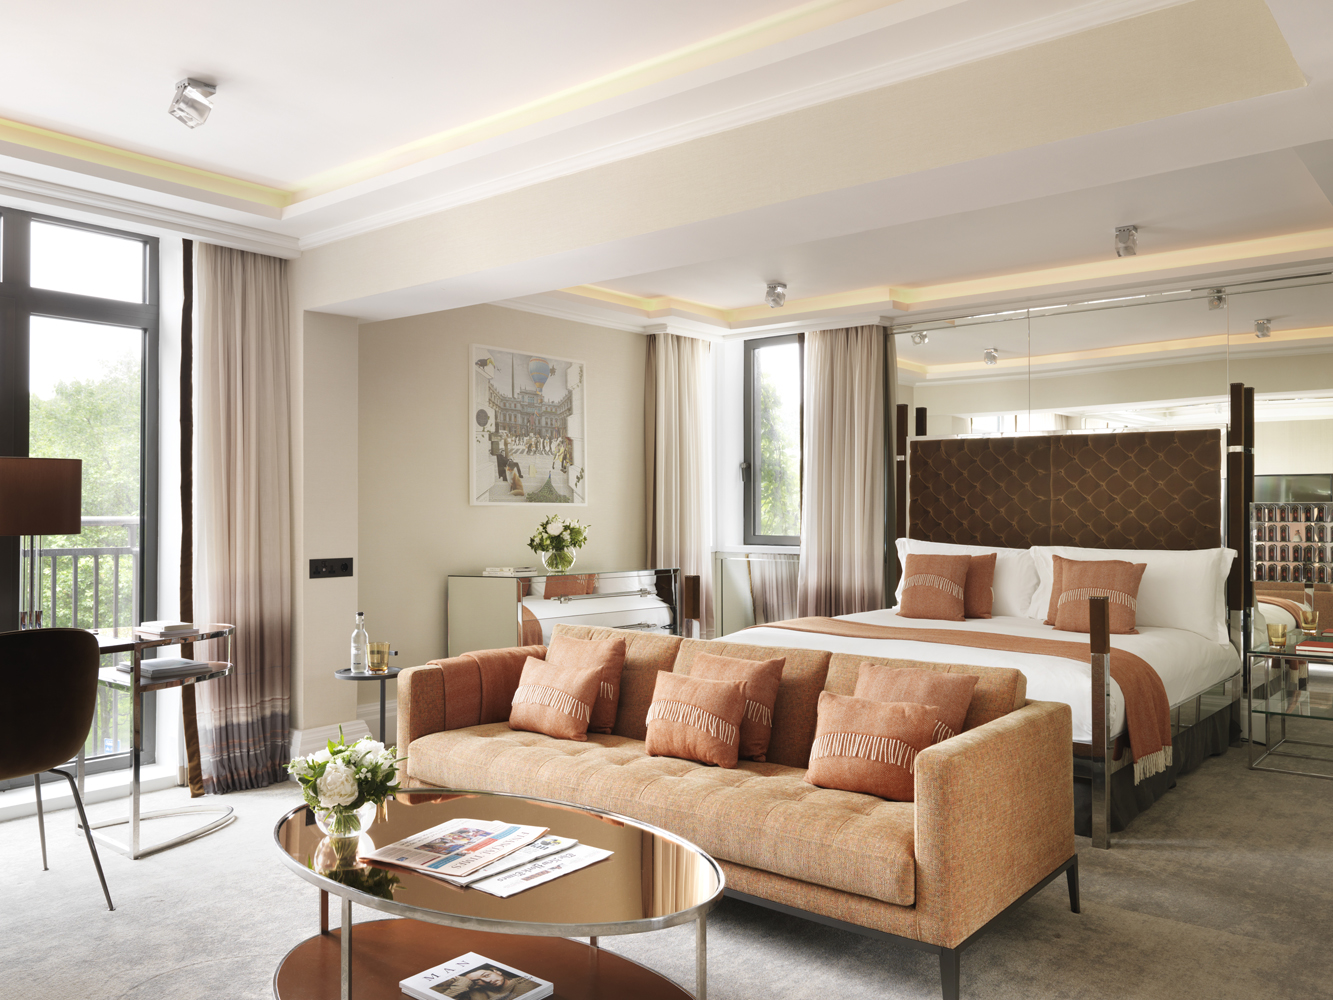 Luxury serviced accommodation in Green Park, London.